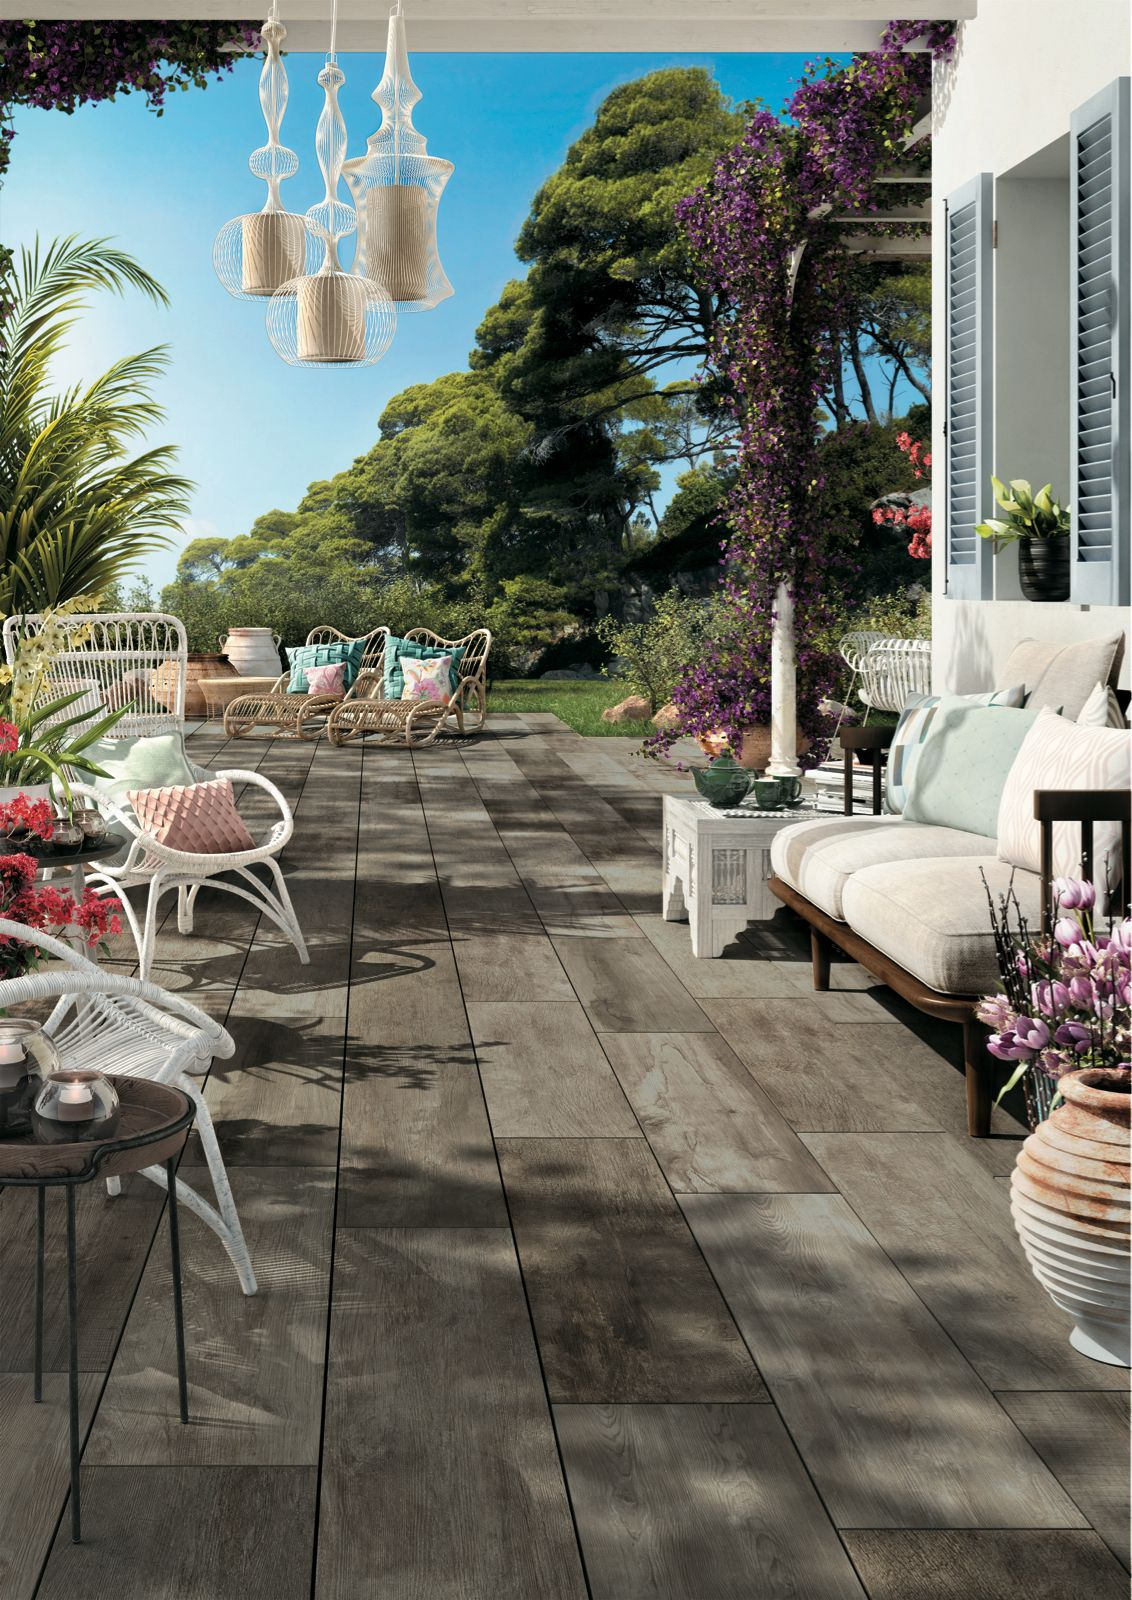 Mirage Porcelain Tiles Offer The Look Of Wood, But The Durability Of  Traditional Pavers